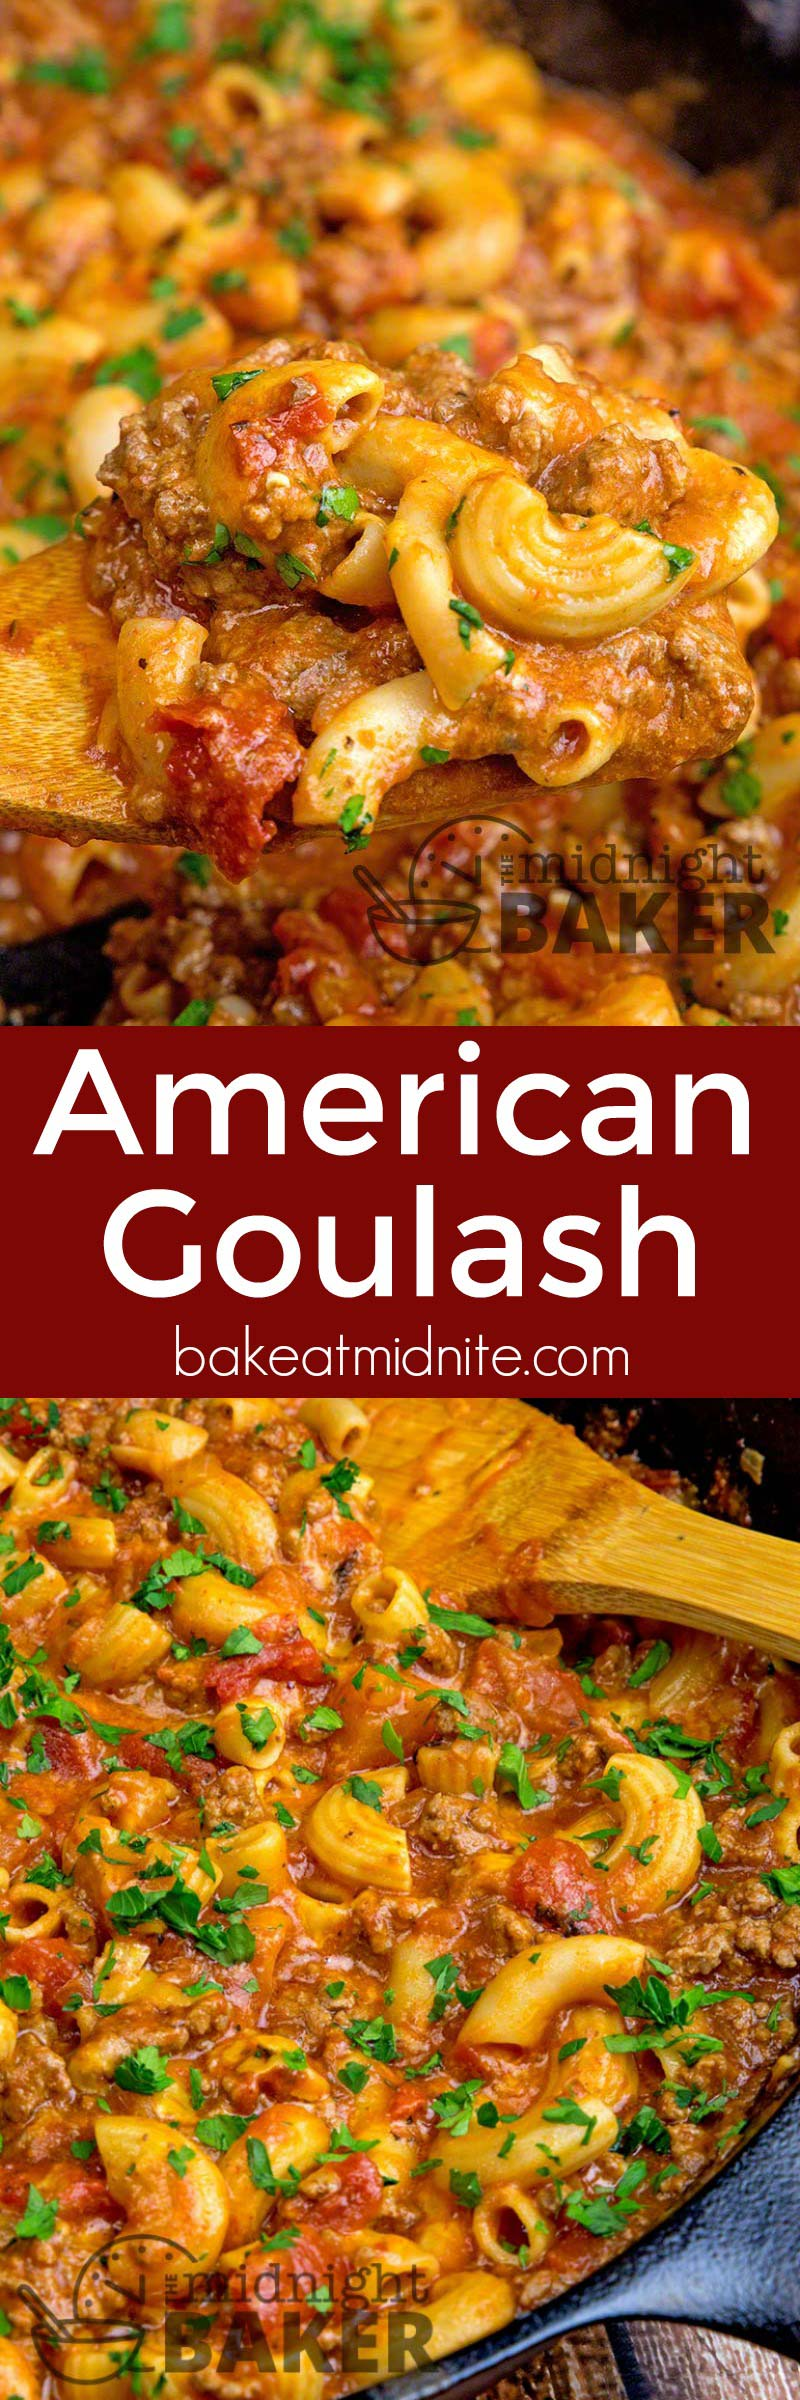 Not only is American goulash quick and easy to make, it's a delicious and timeless comfort food.